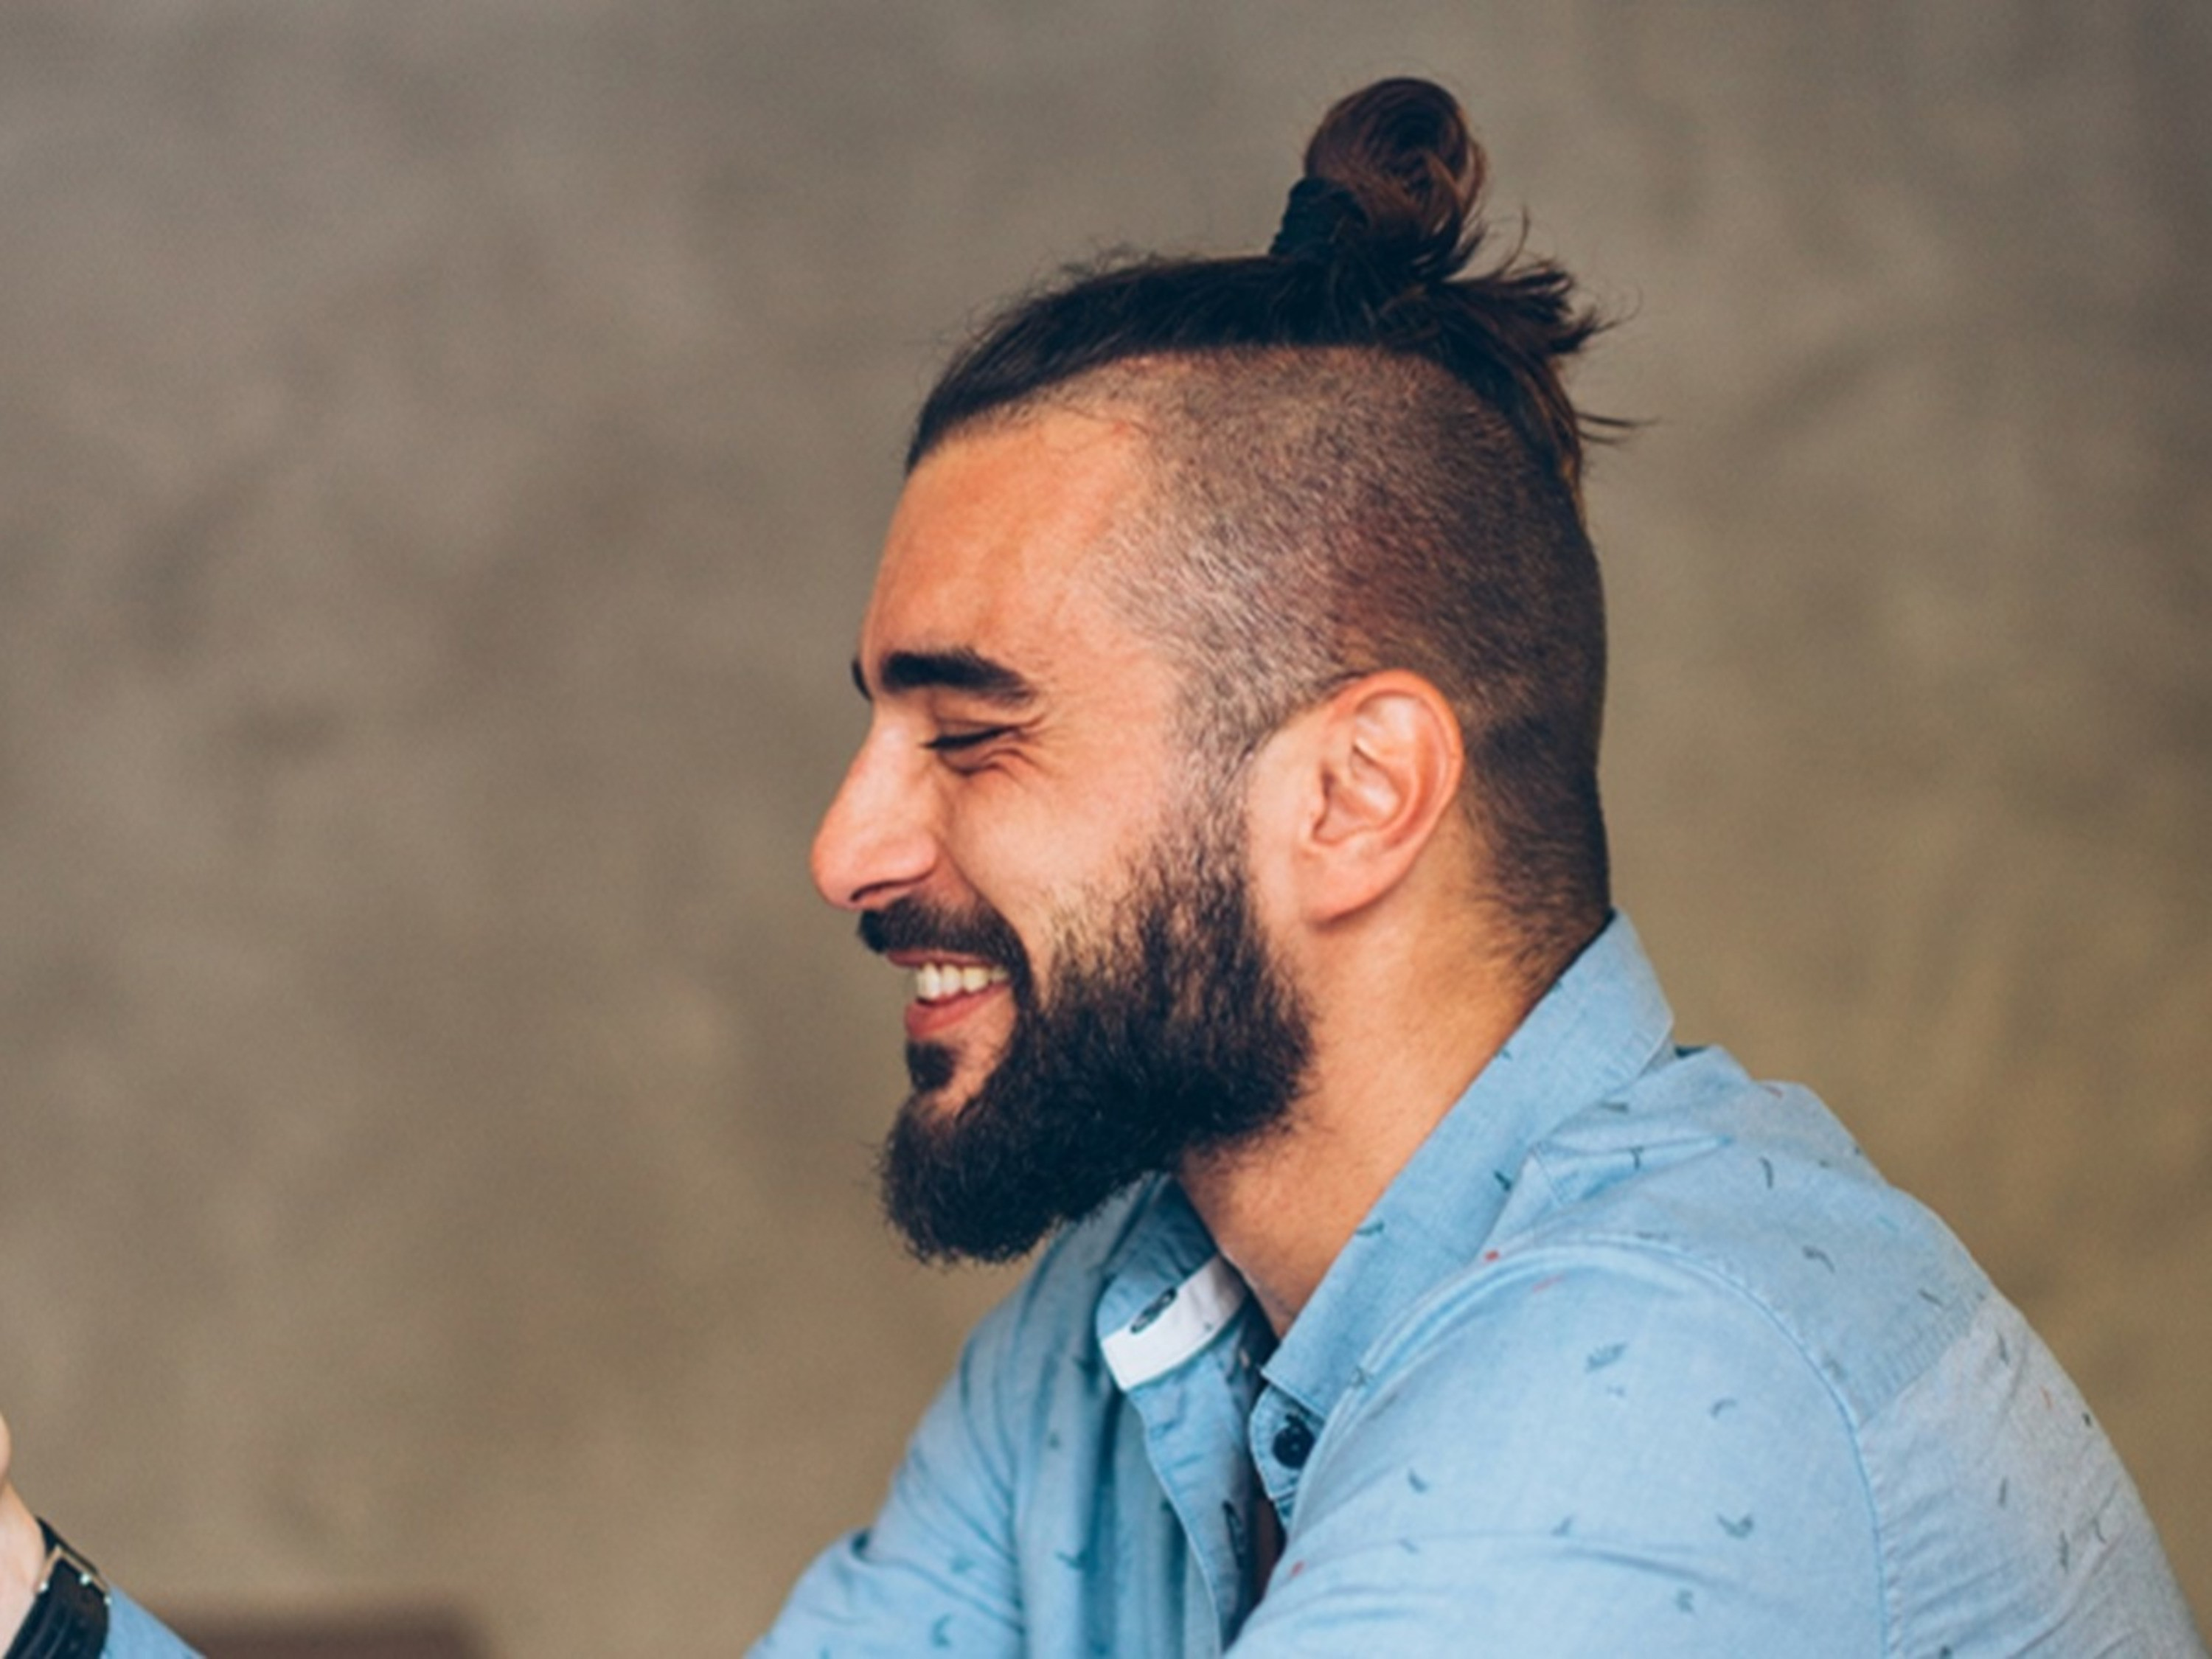 A high faded male hairstyle with a bun.